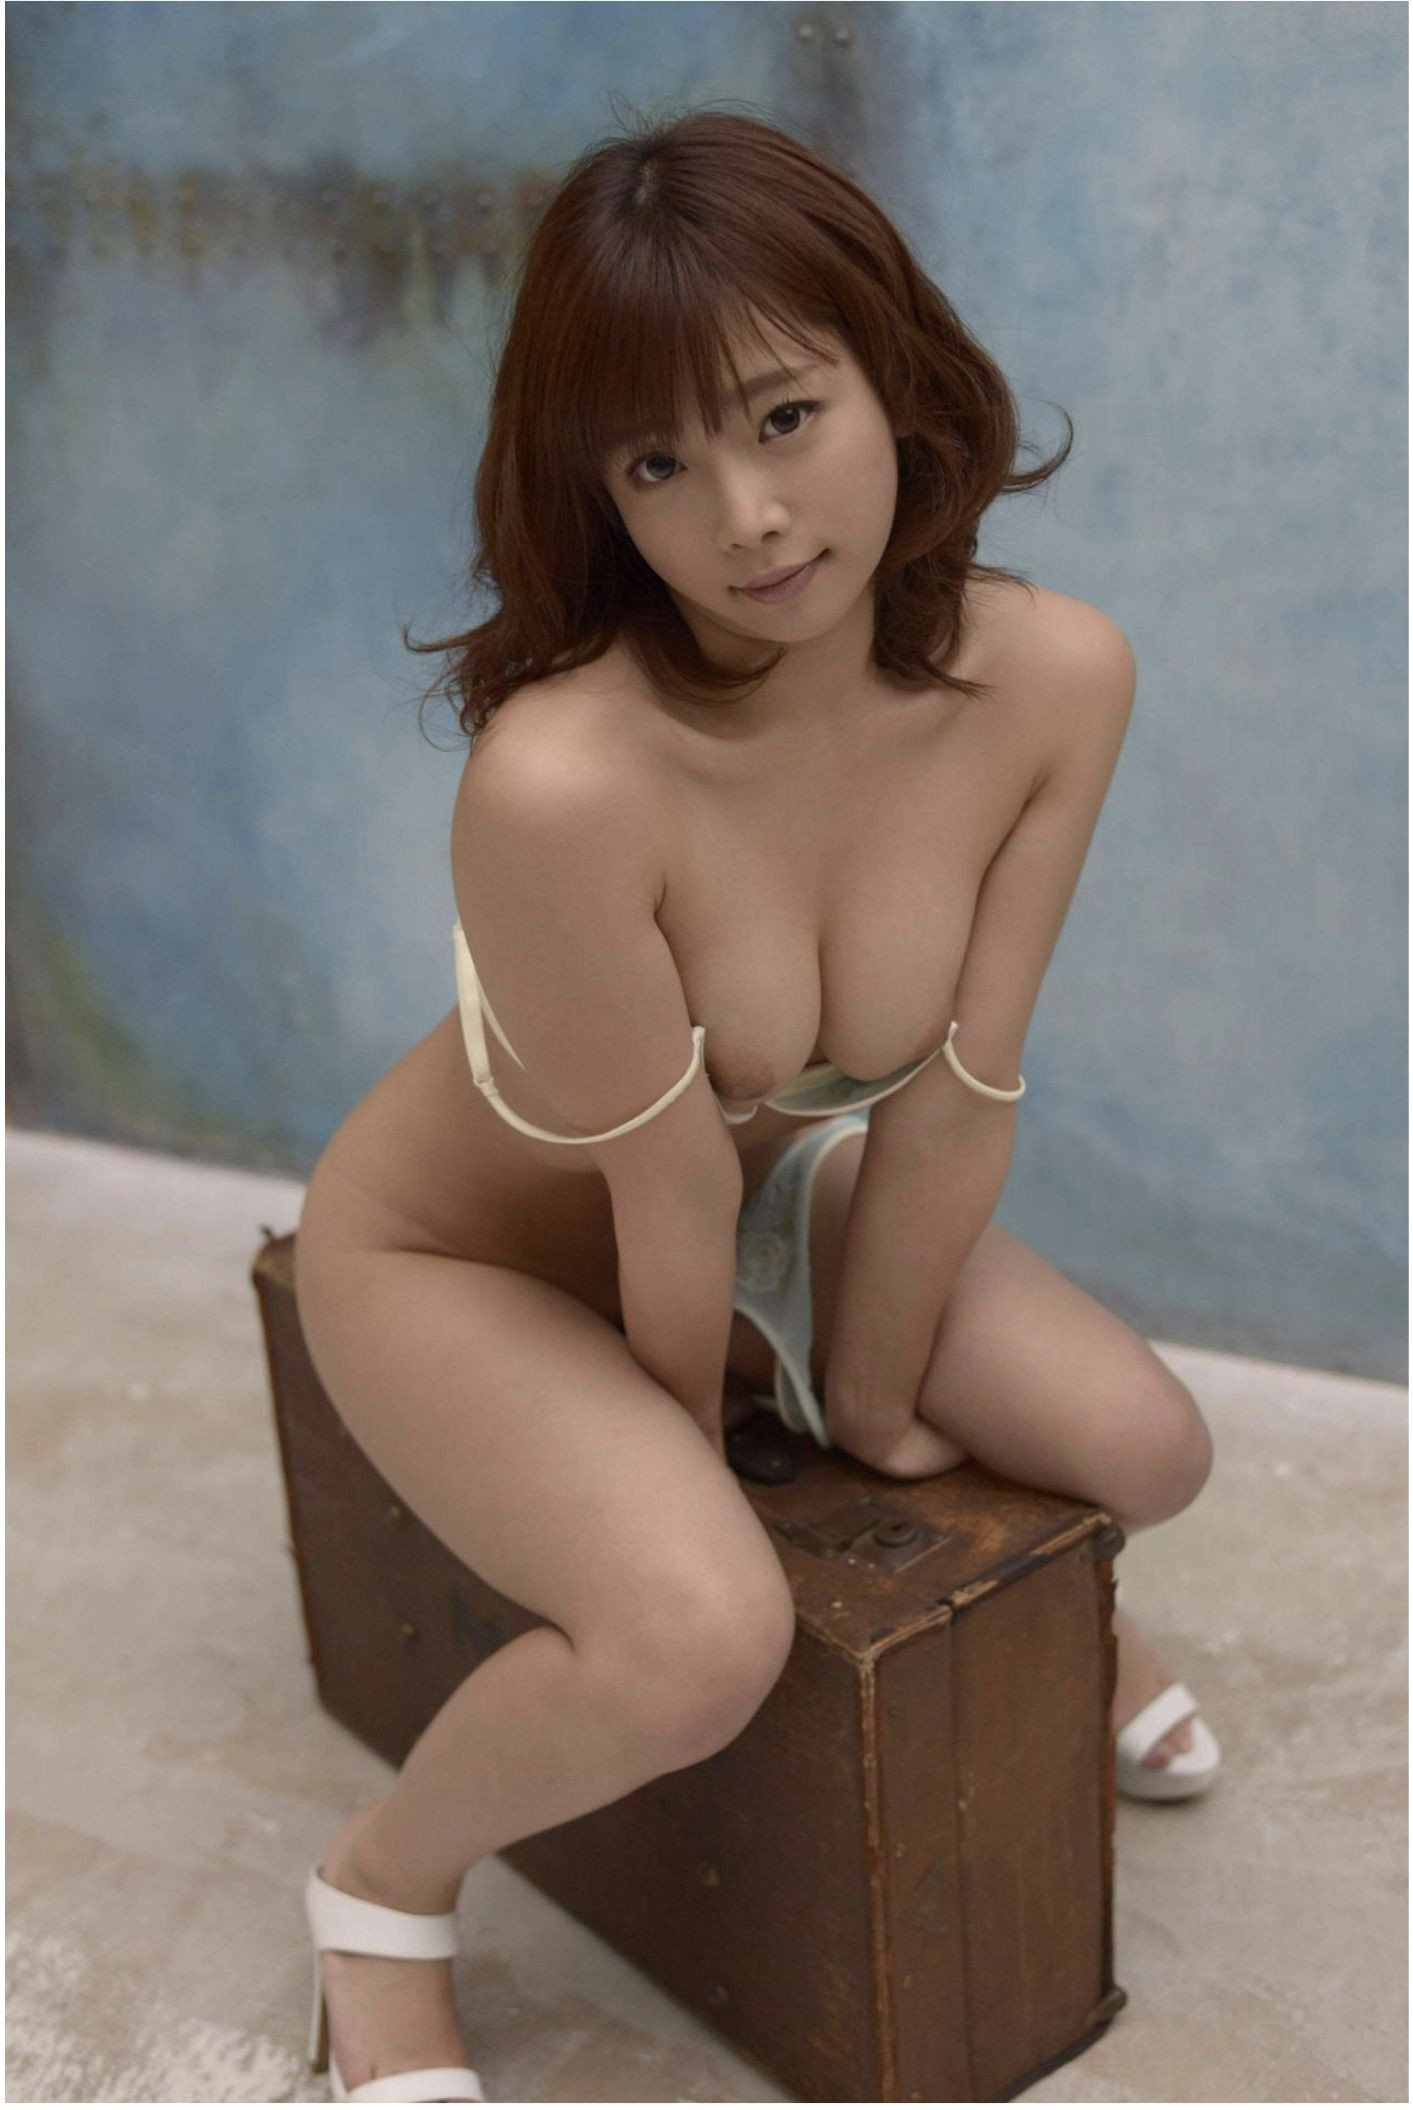 SOFT ON DEMAND GRAVURE COLLECTION 紗倉まな04 photo 101